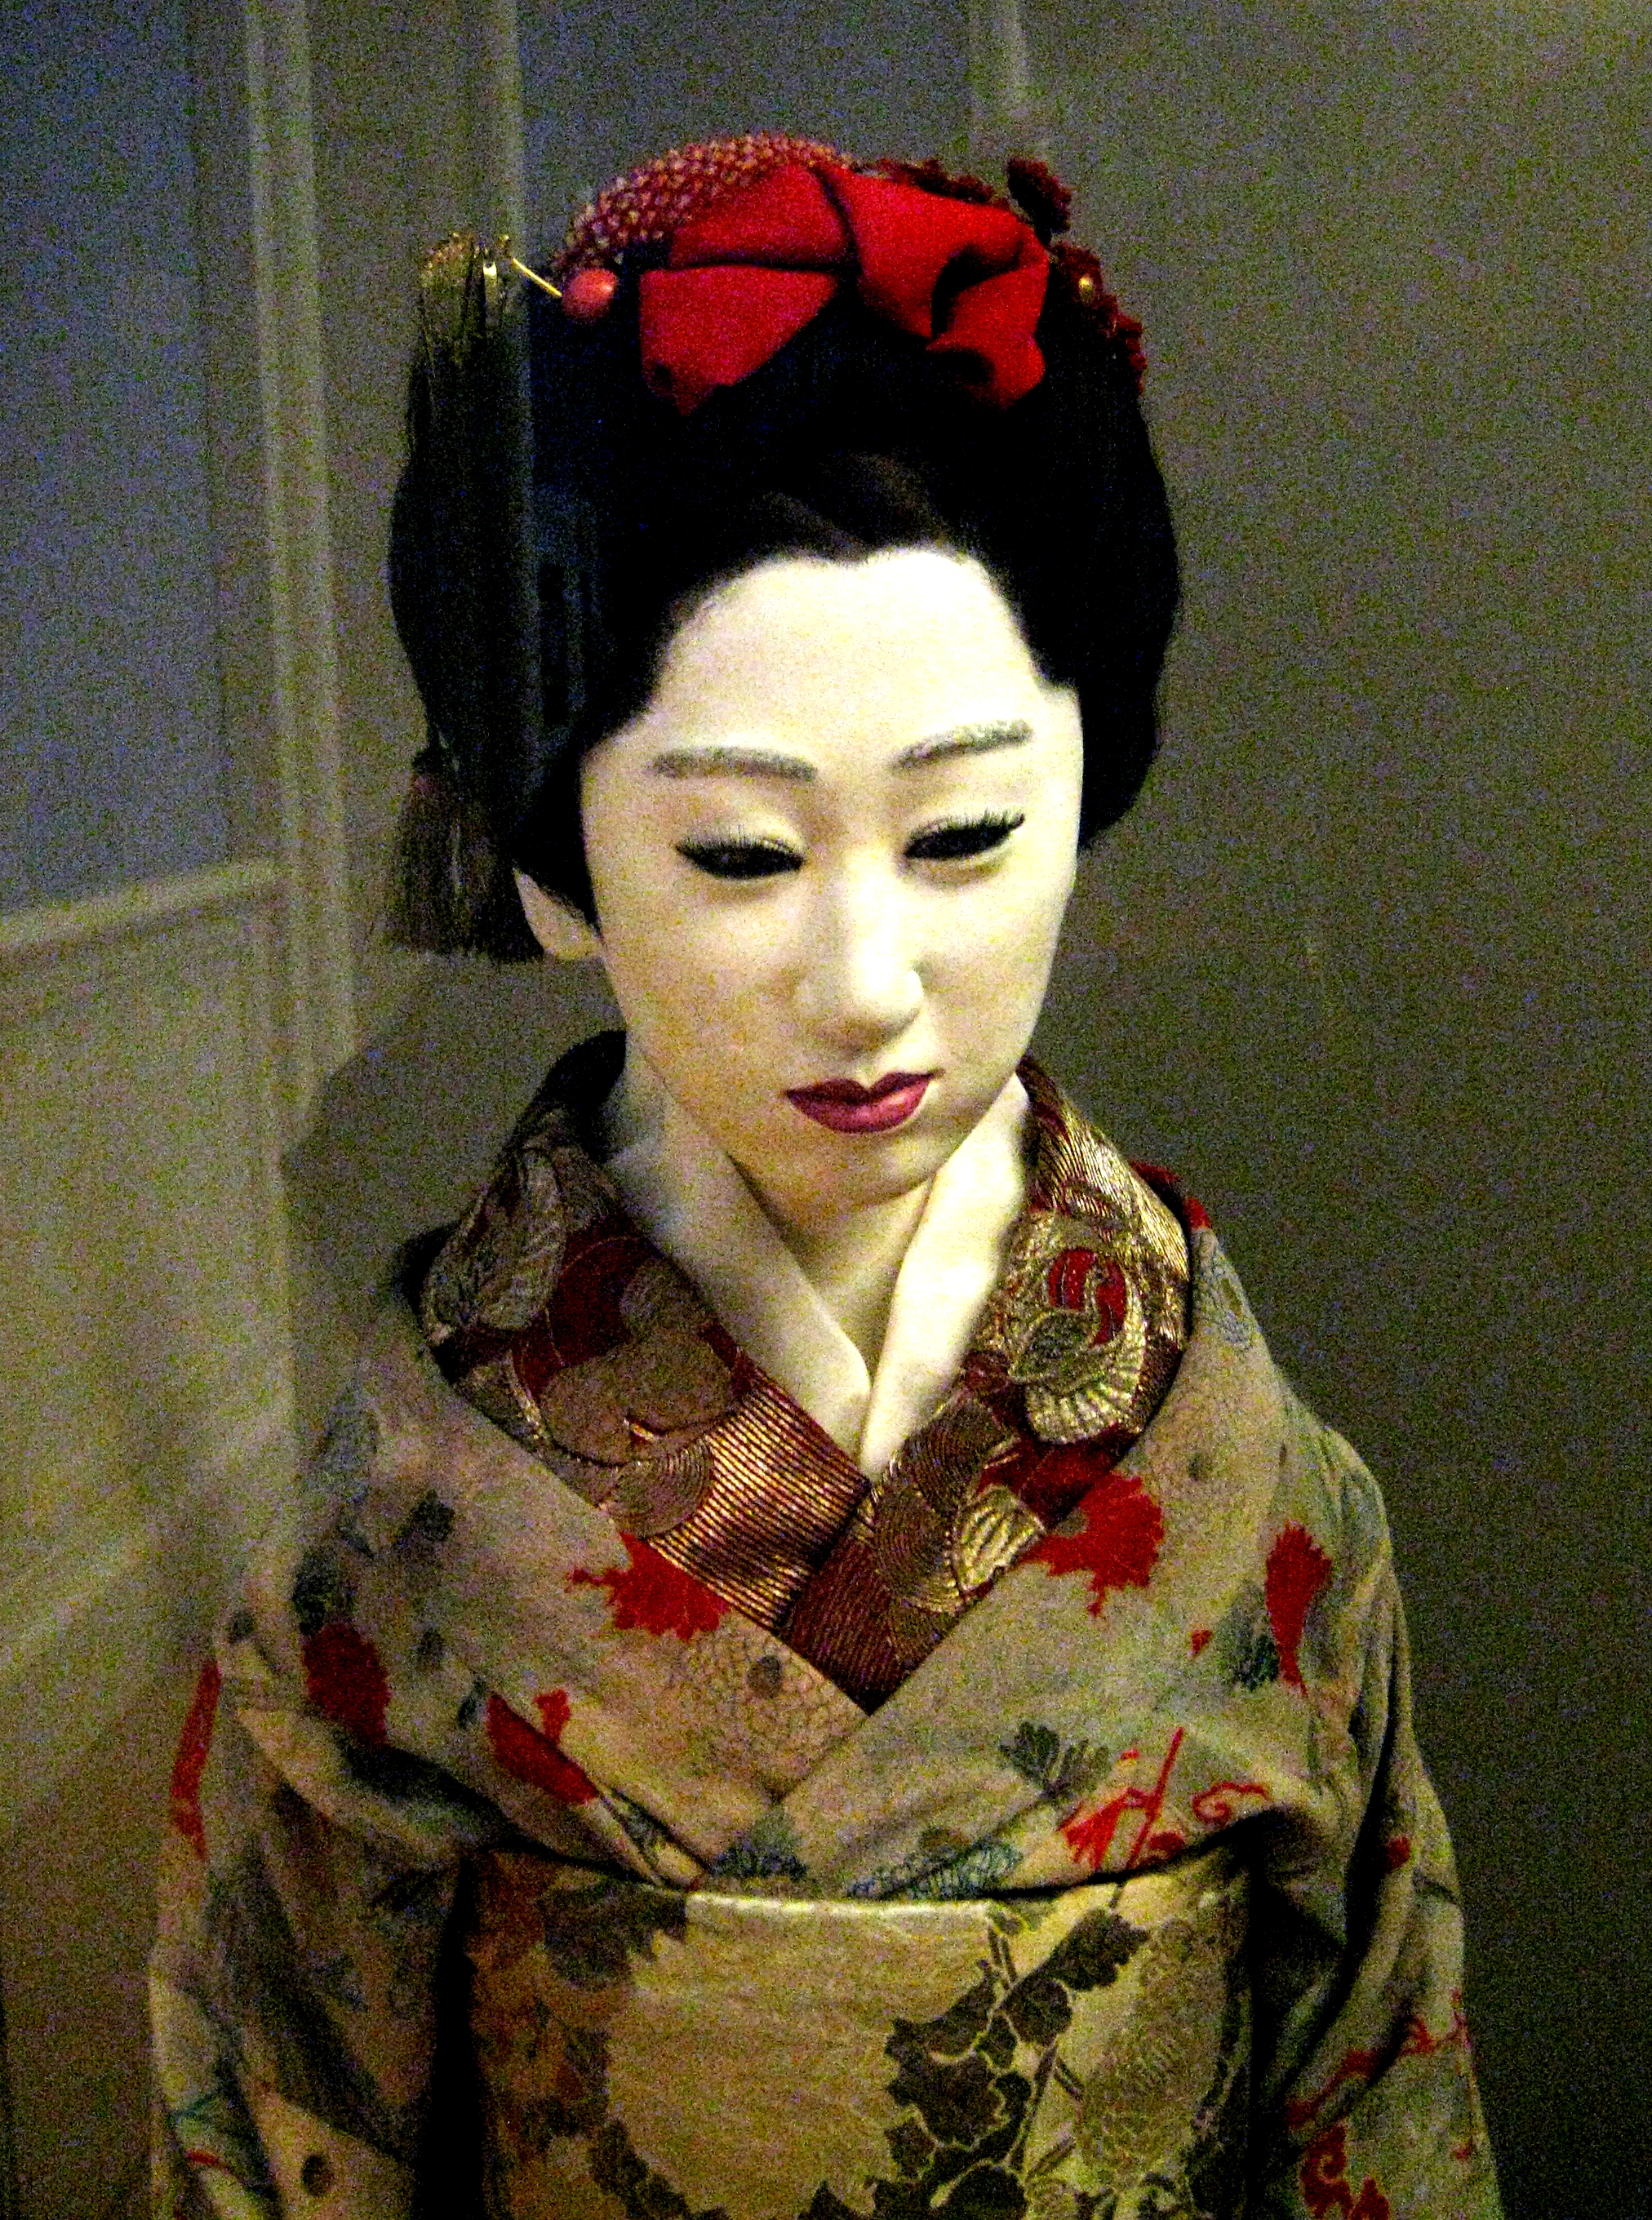 filegeisha mooroka omatsu 03 by shakkojpg wikimedia